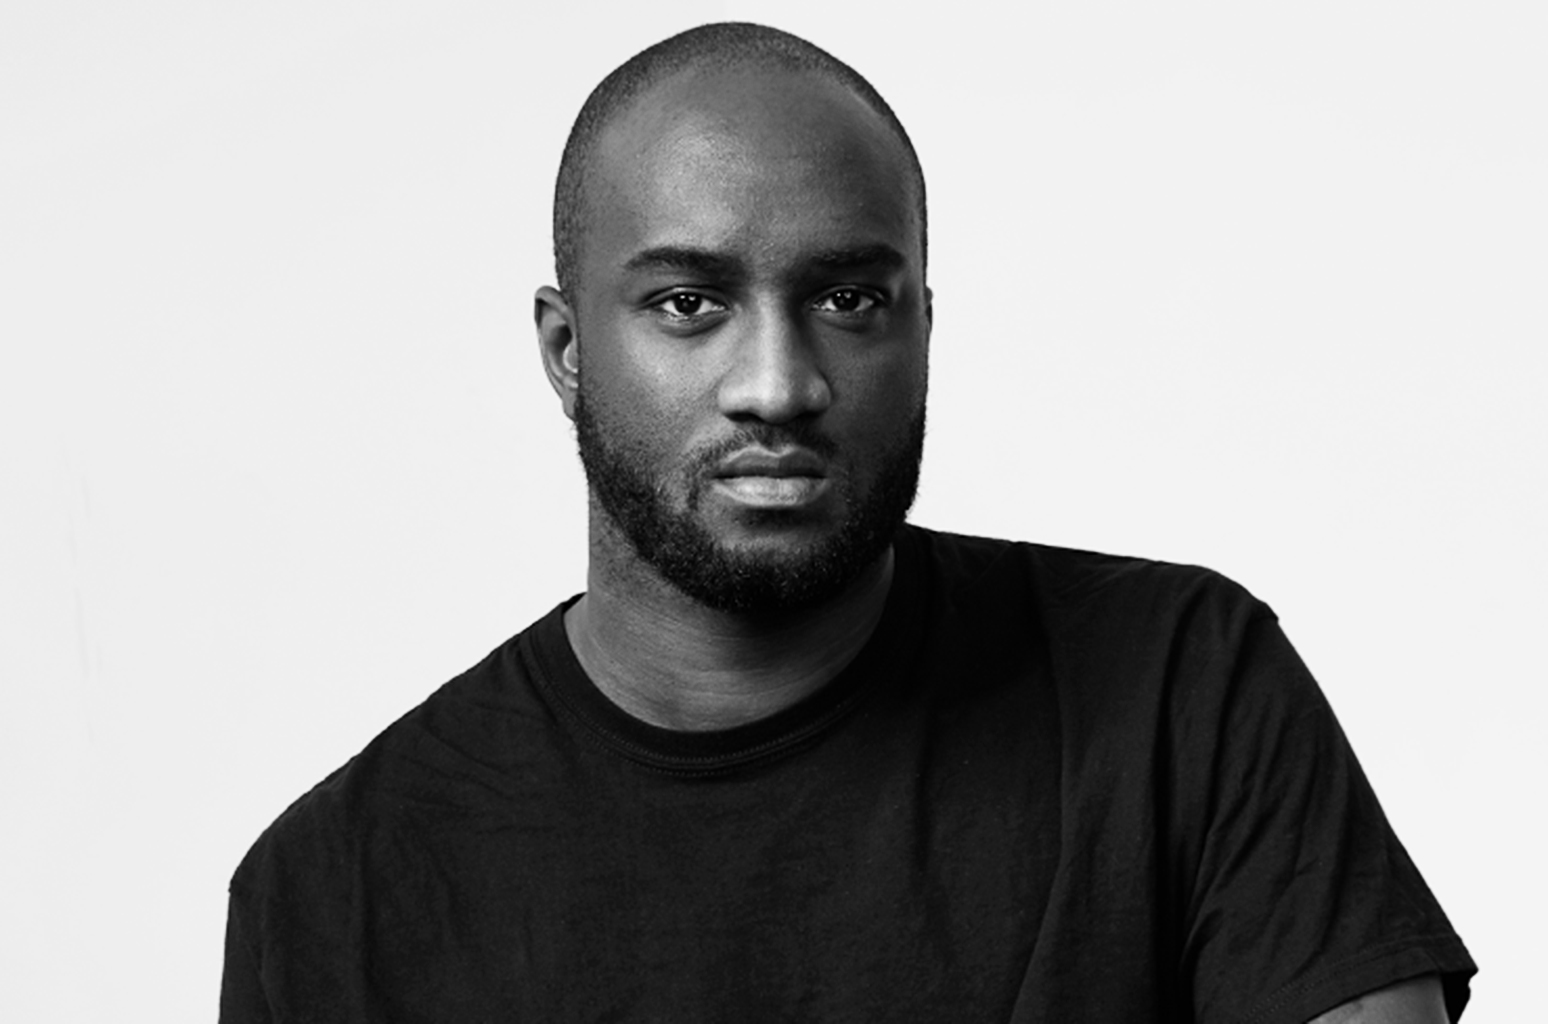 Virgil-Abloh-press-photo-2016-billboard-bw-1548